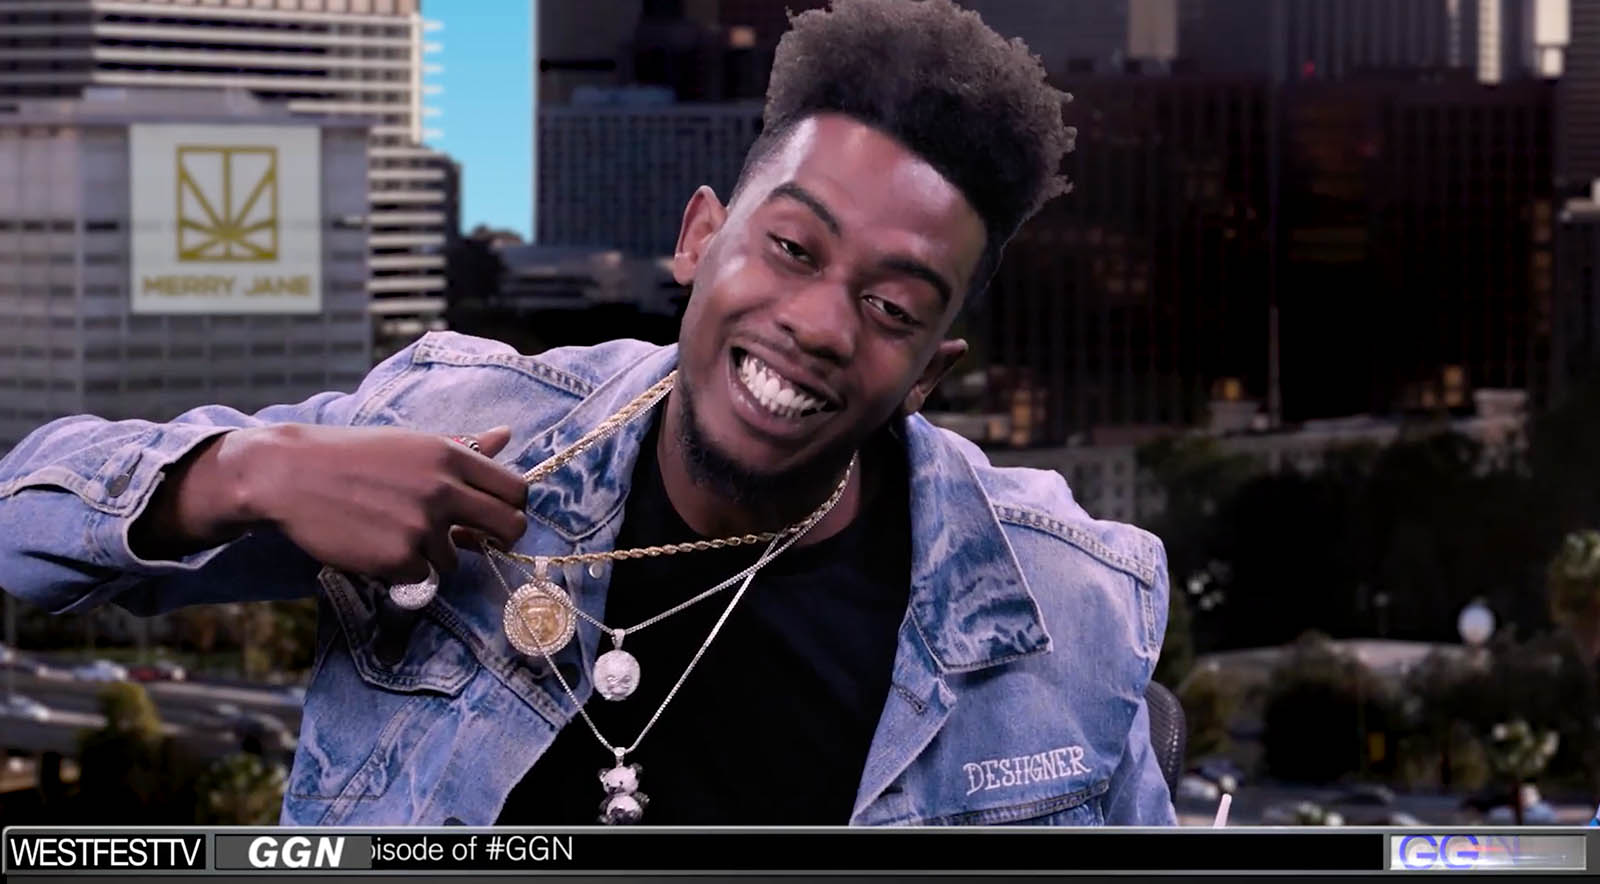 The Surprising Reason Behind Desiigner's Infectious Positivity